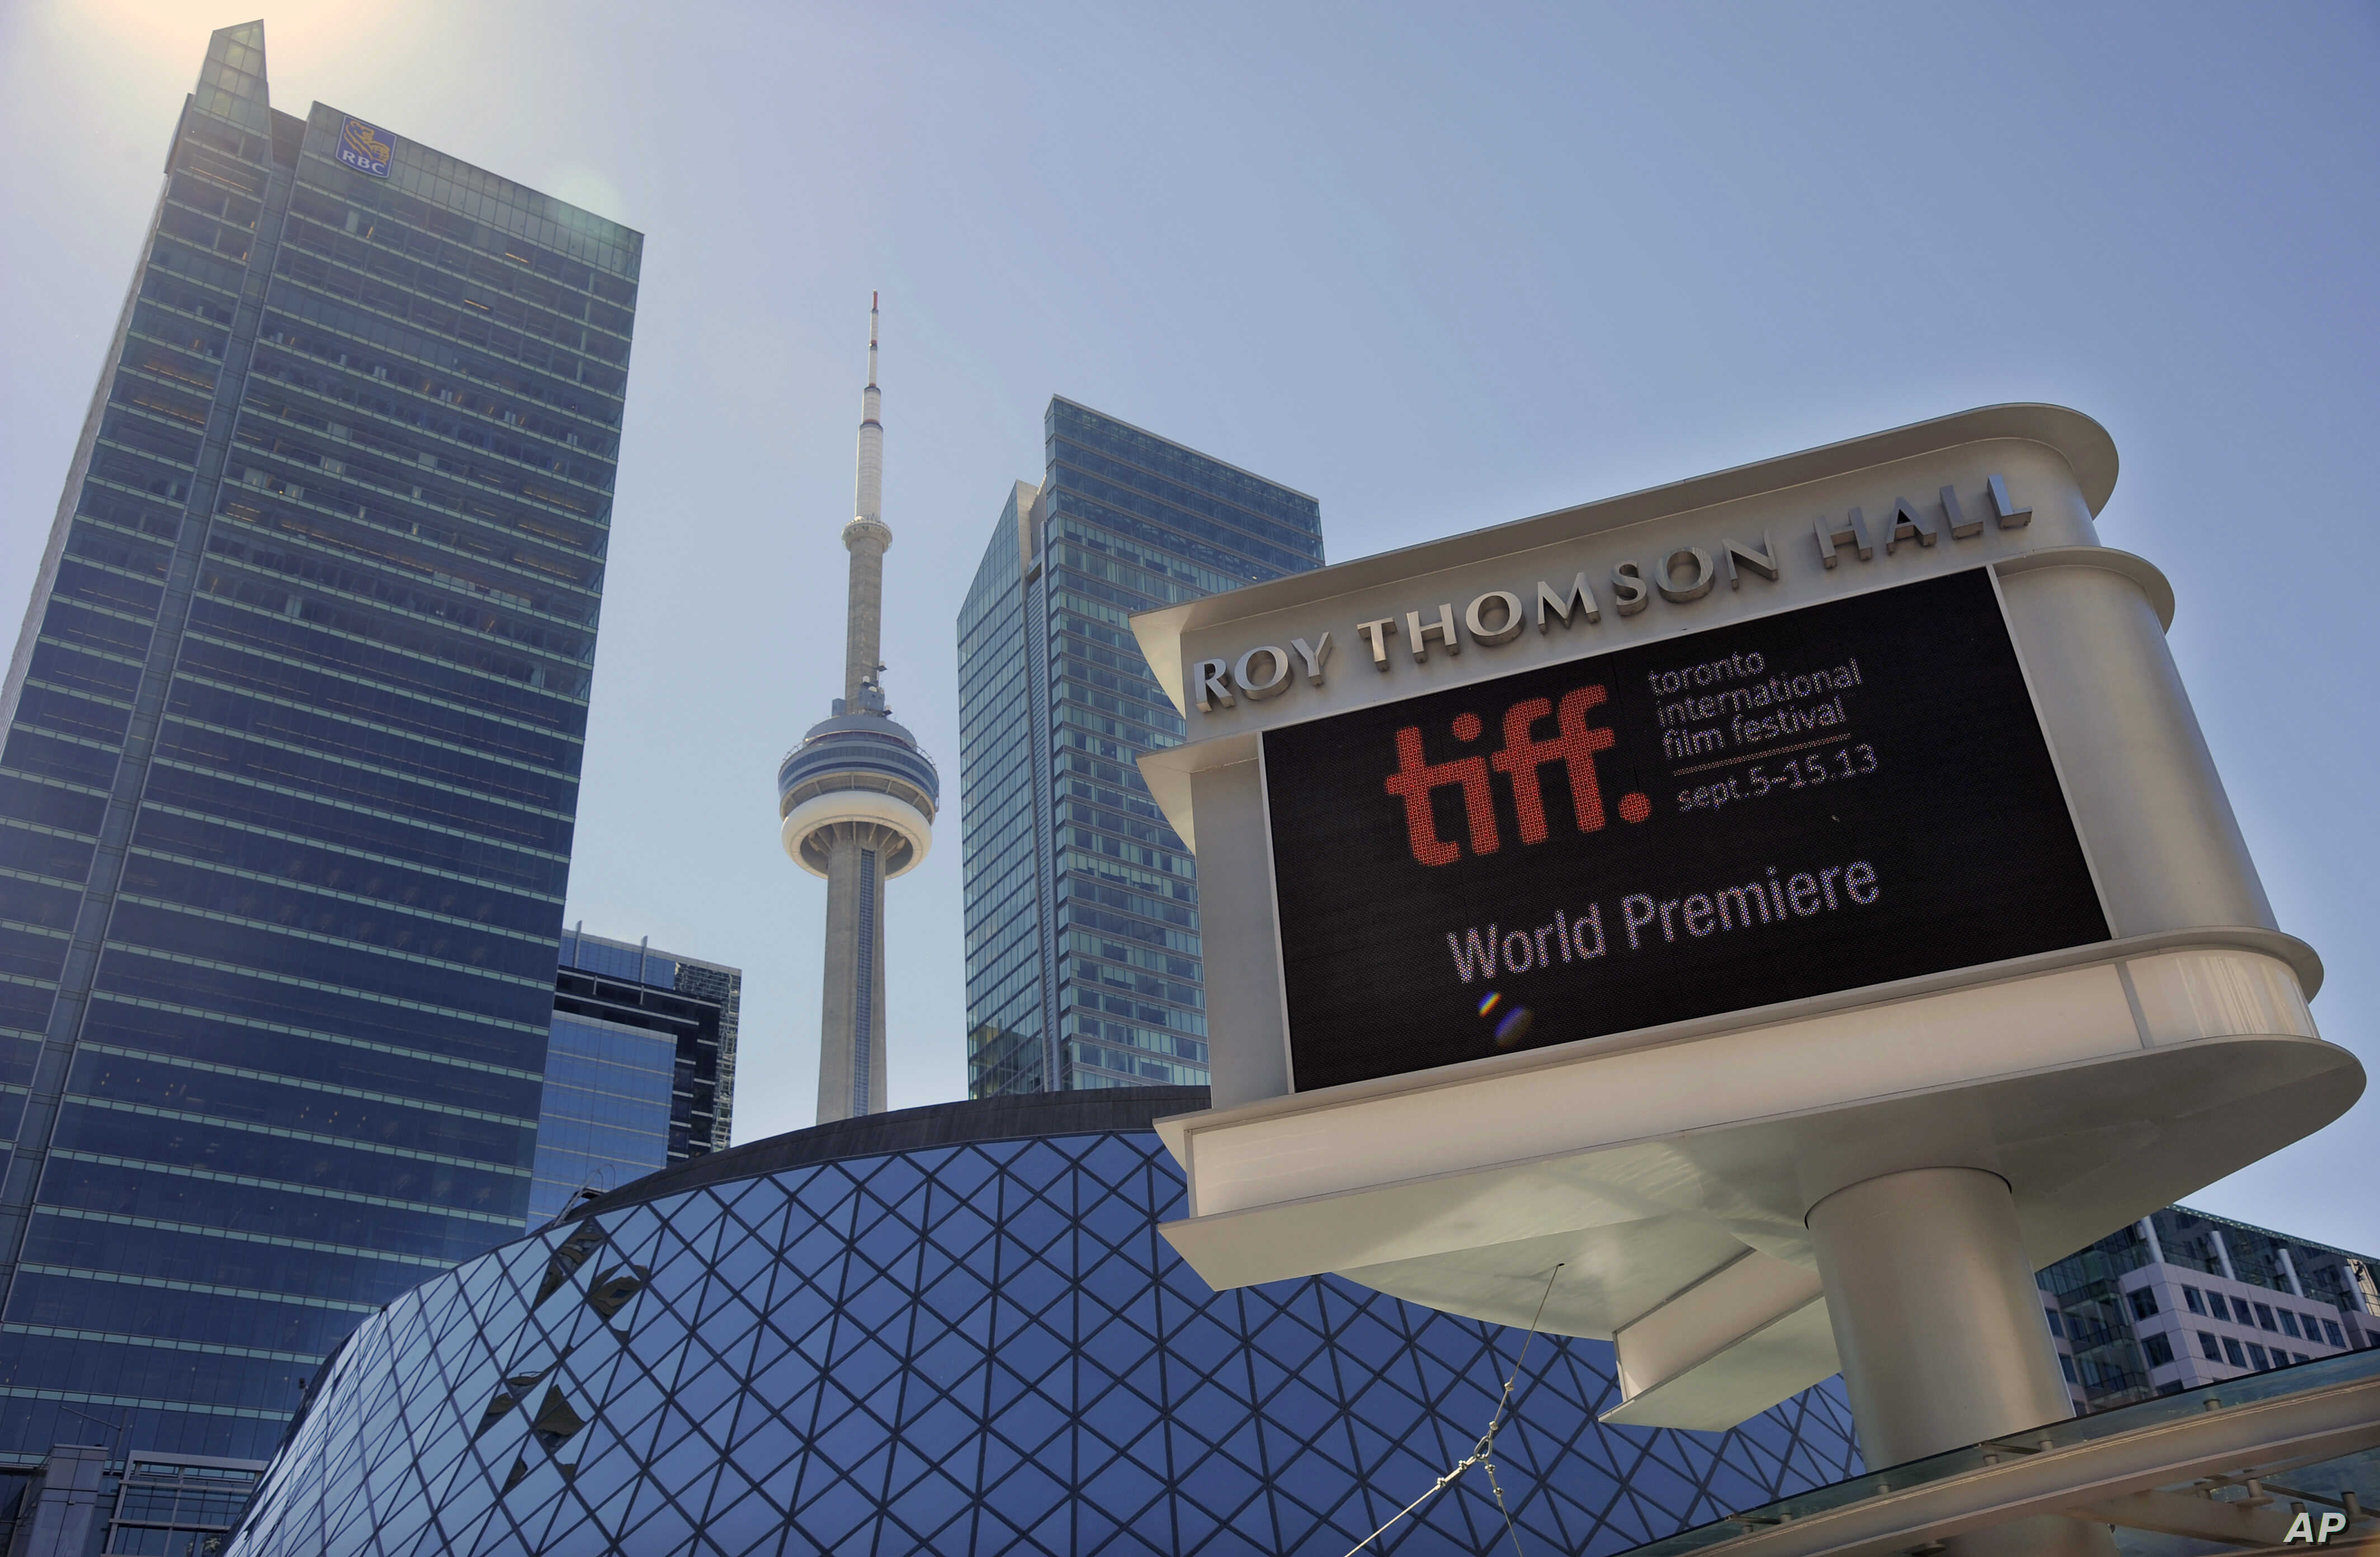 FILE - A view of Roy Thomson Hall venue on the first day of the 2013 Toronto International Film Festival, Sept. 5, 2013, in Toronto.